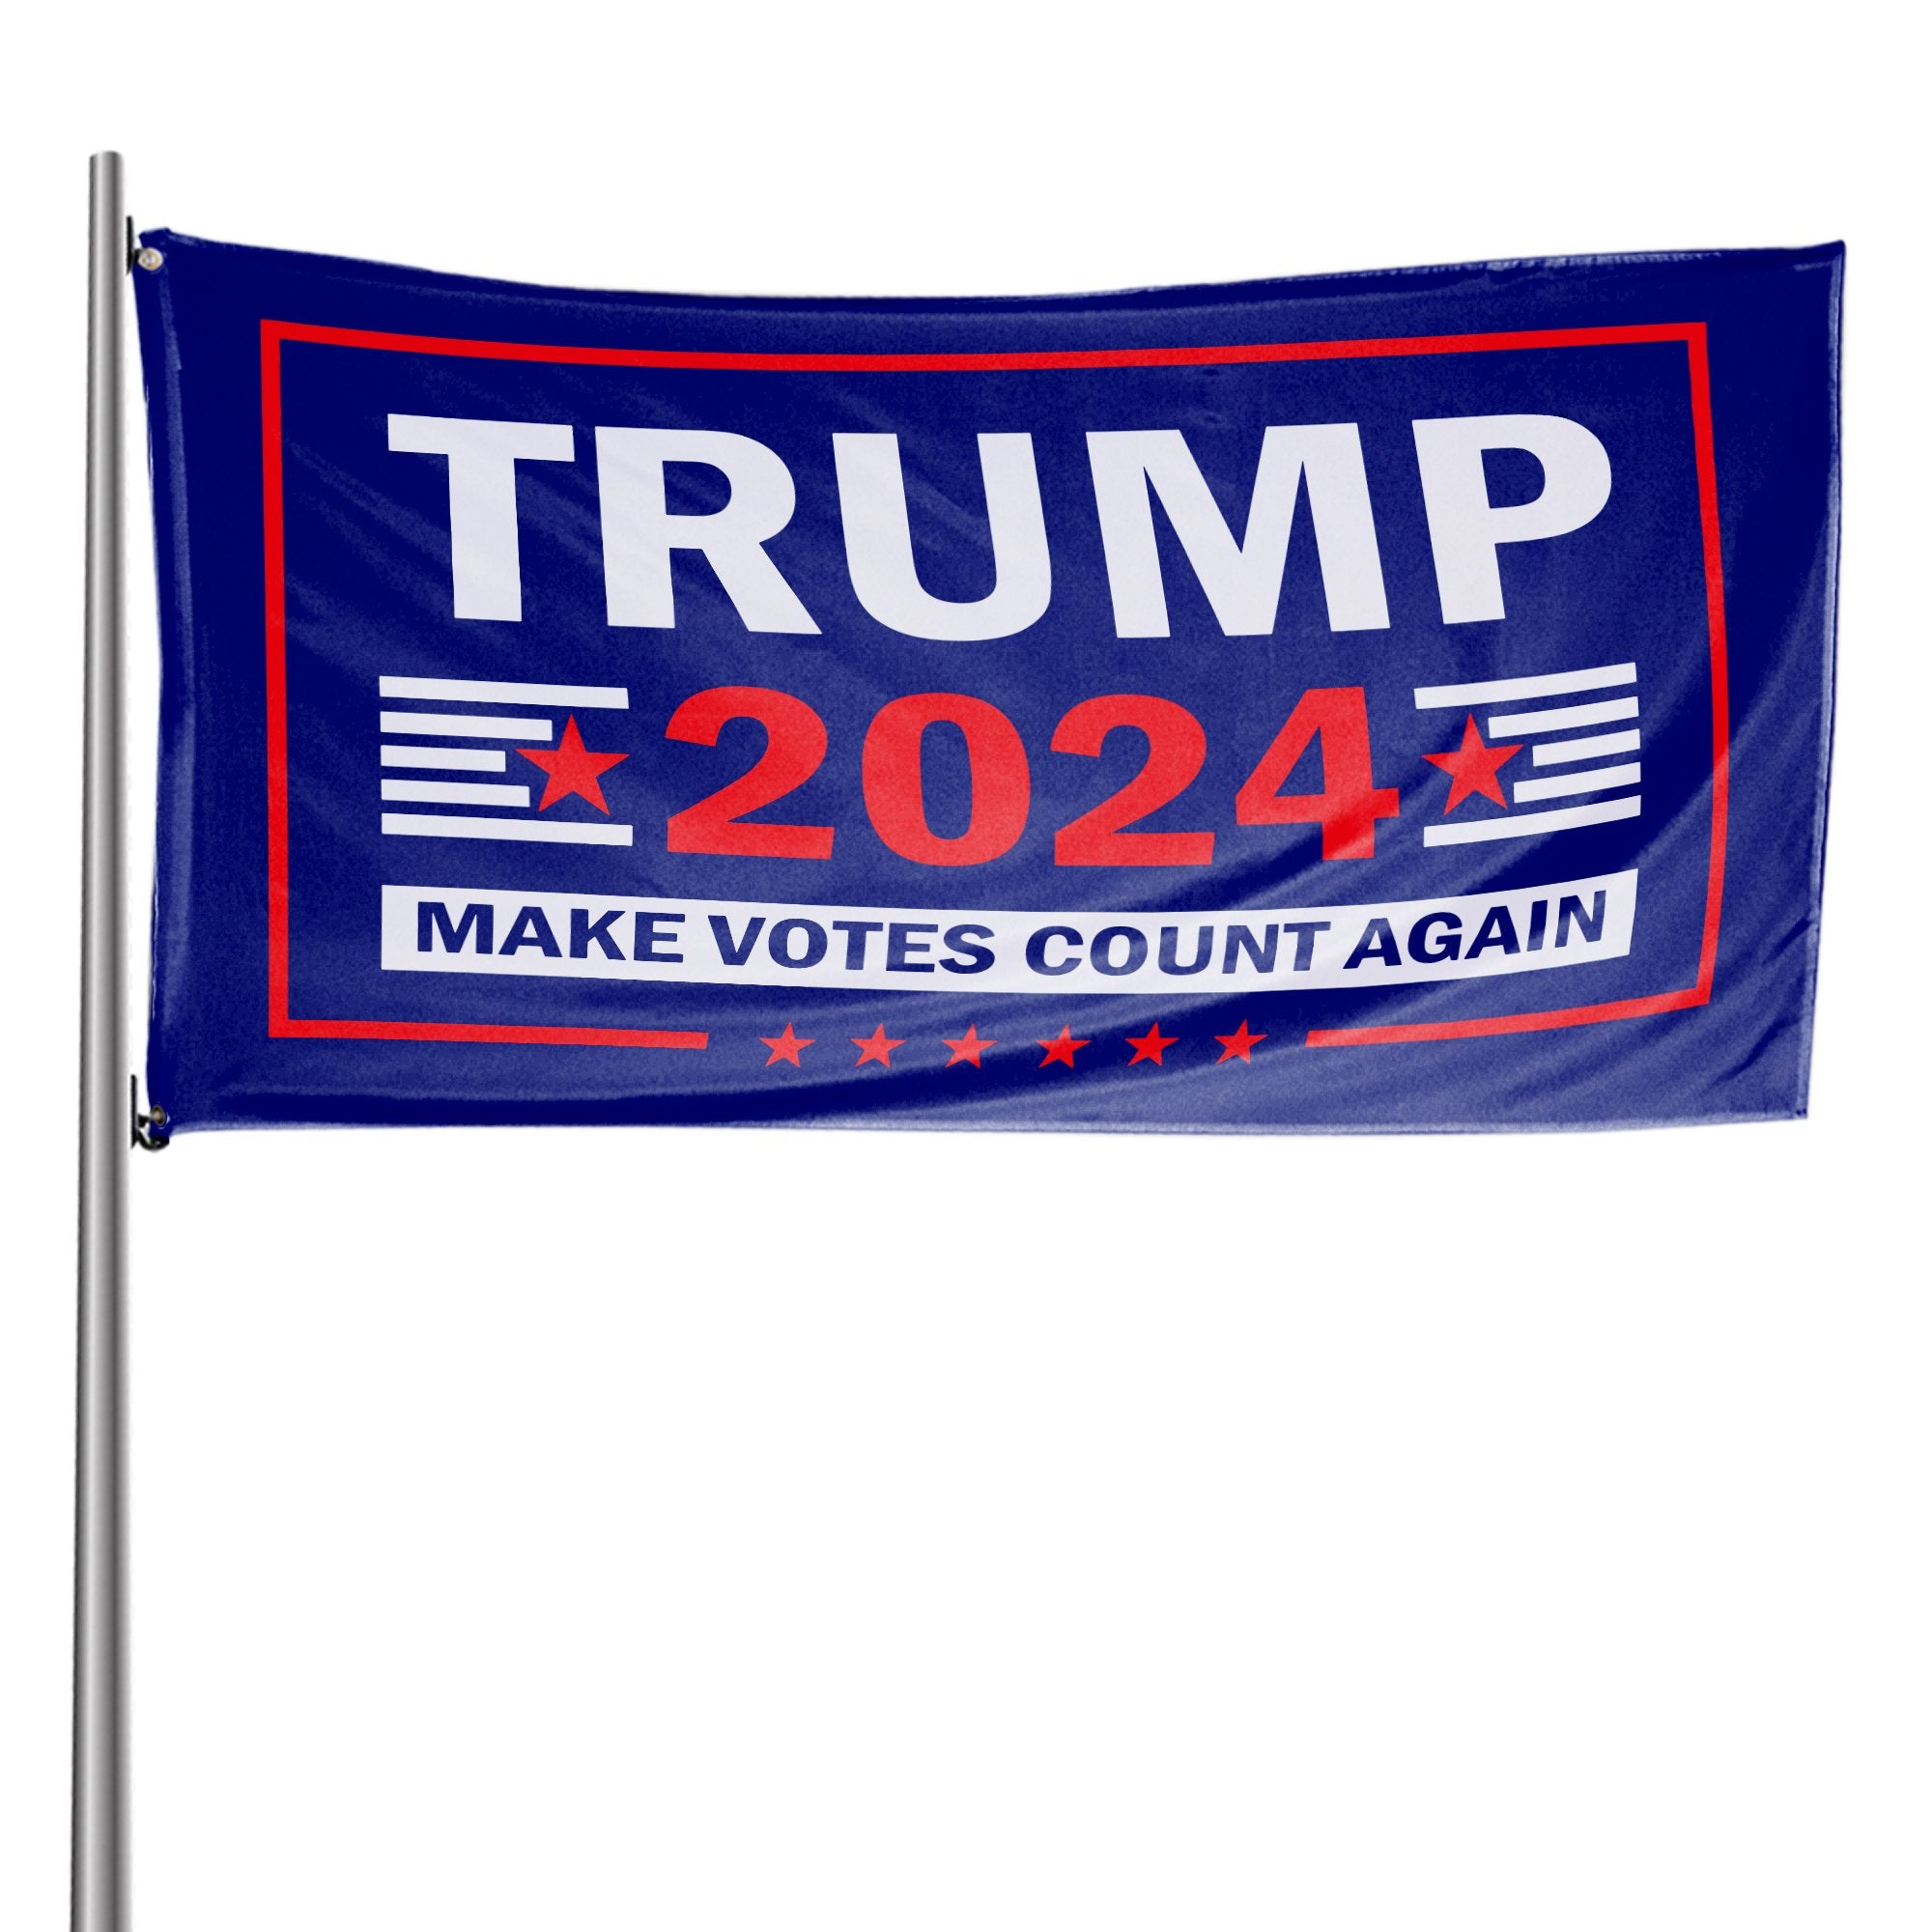 Trump 2024 Make Votes Count Again & Illinois For Trump 3 x 5 Flag Bundle